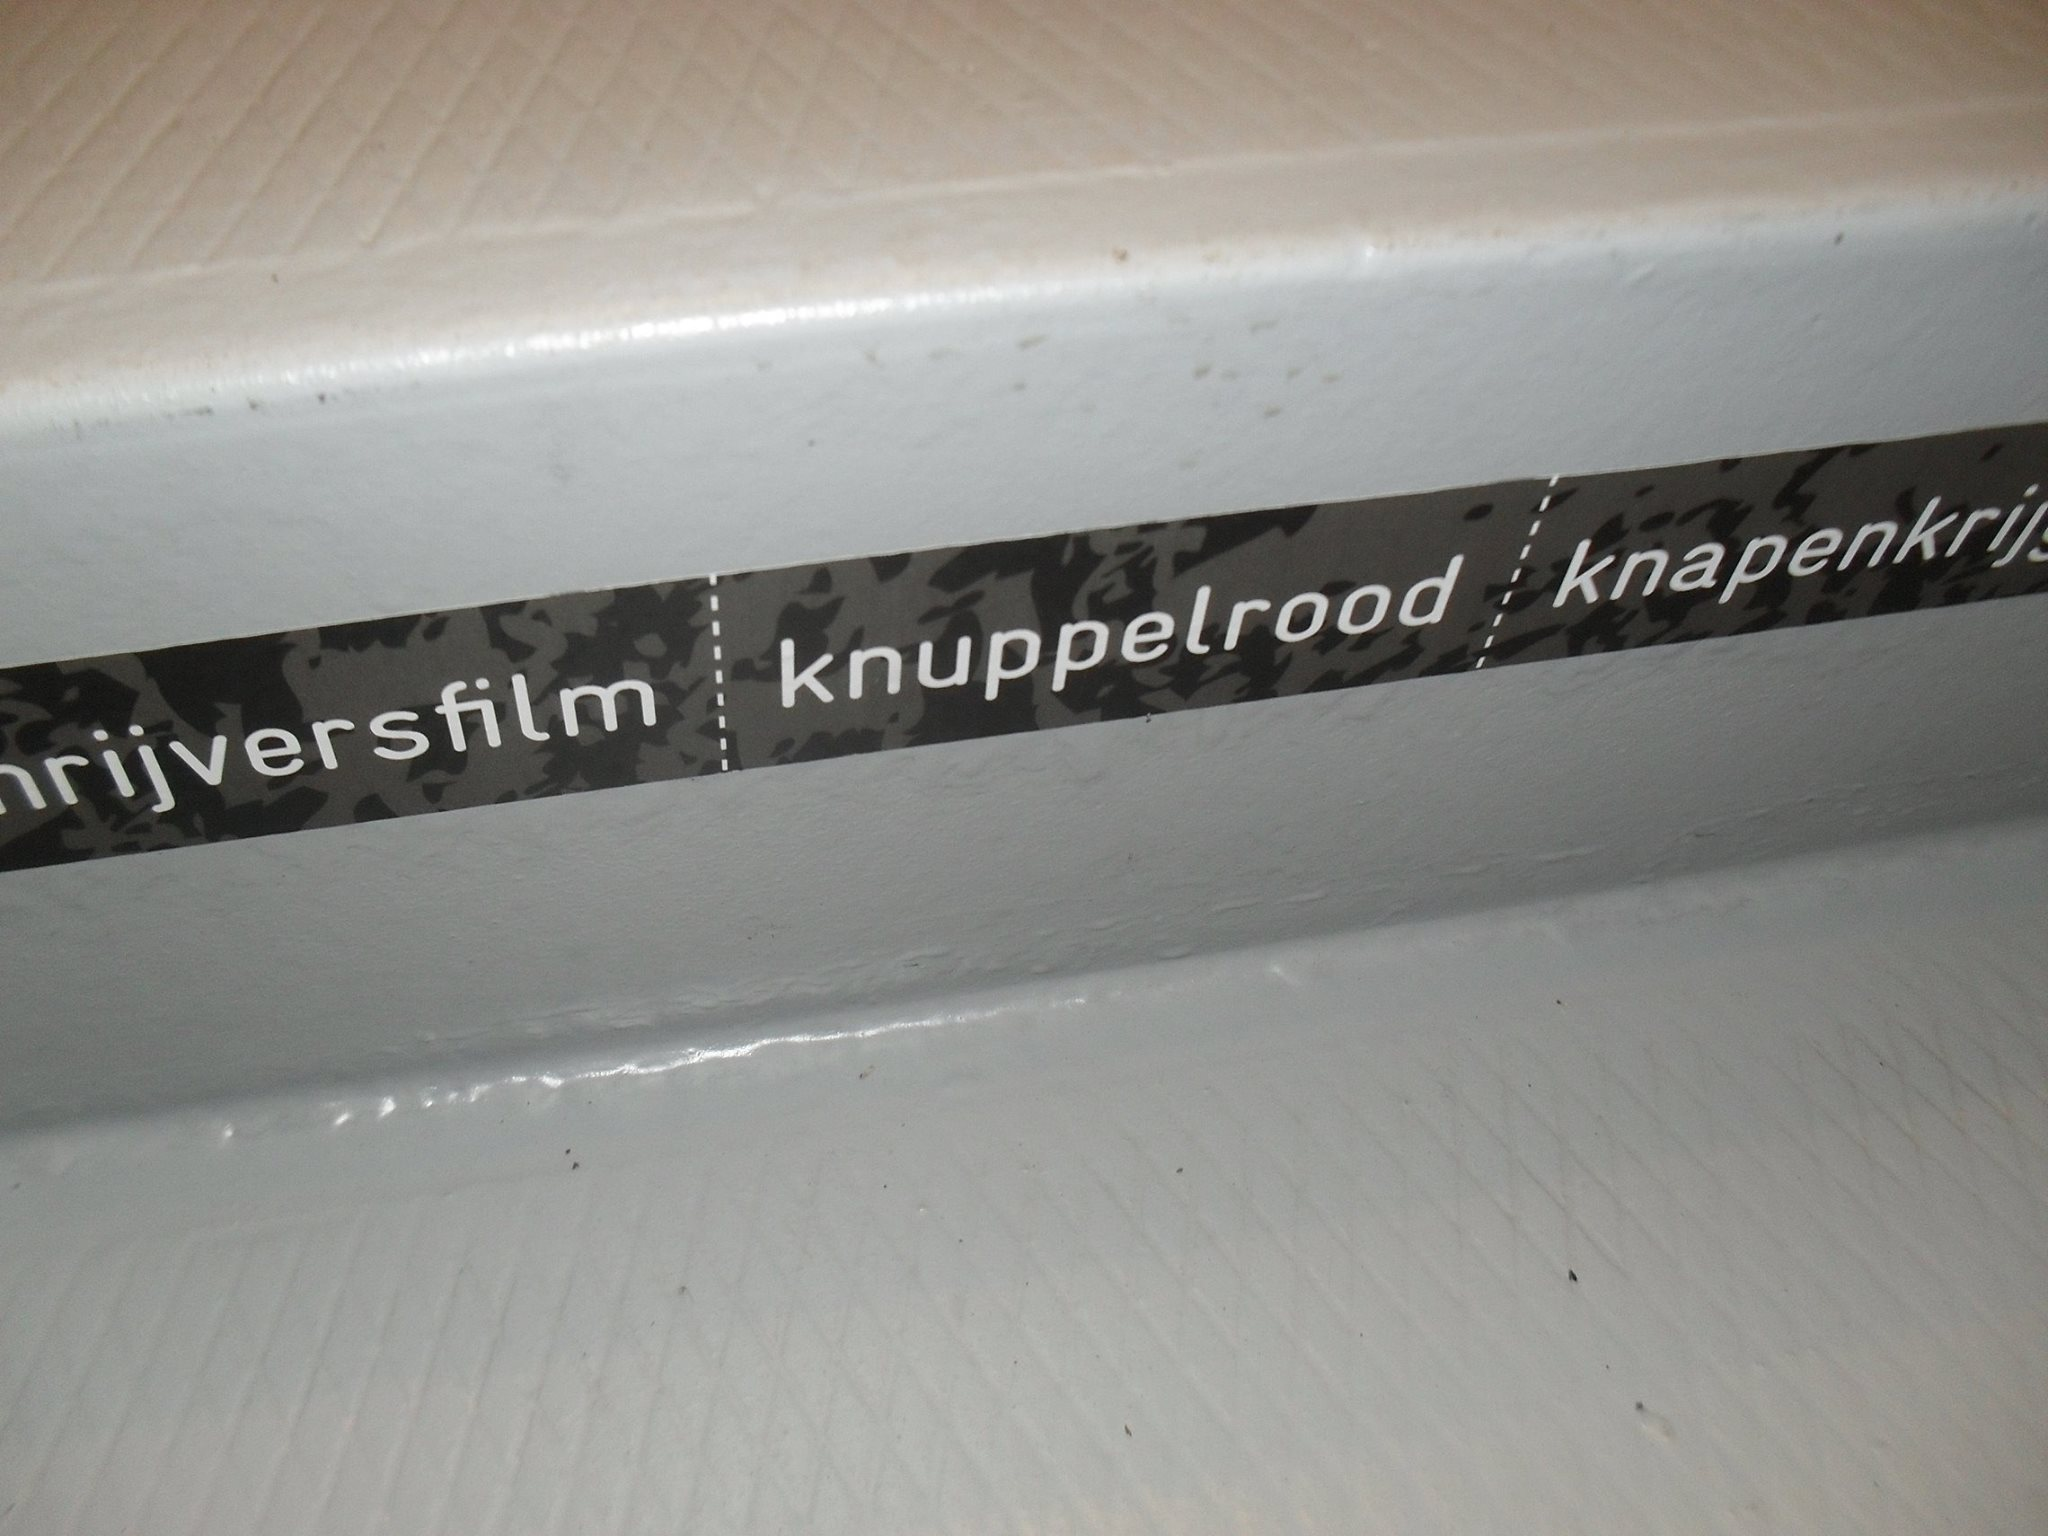 knuppelrood